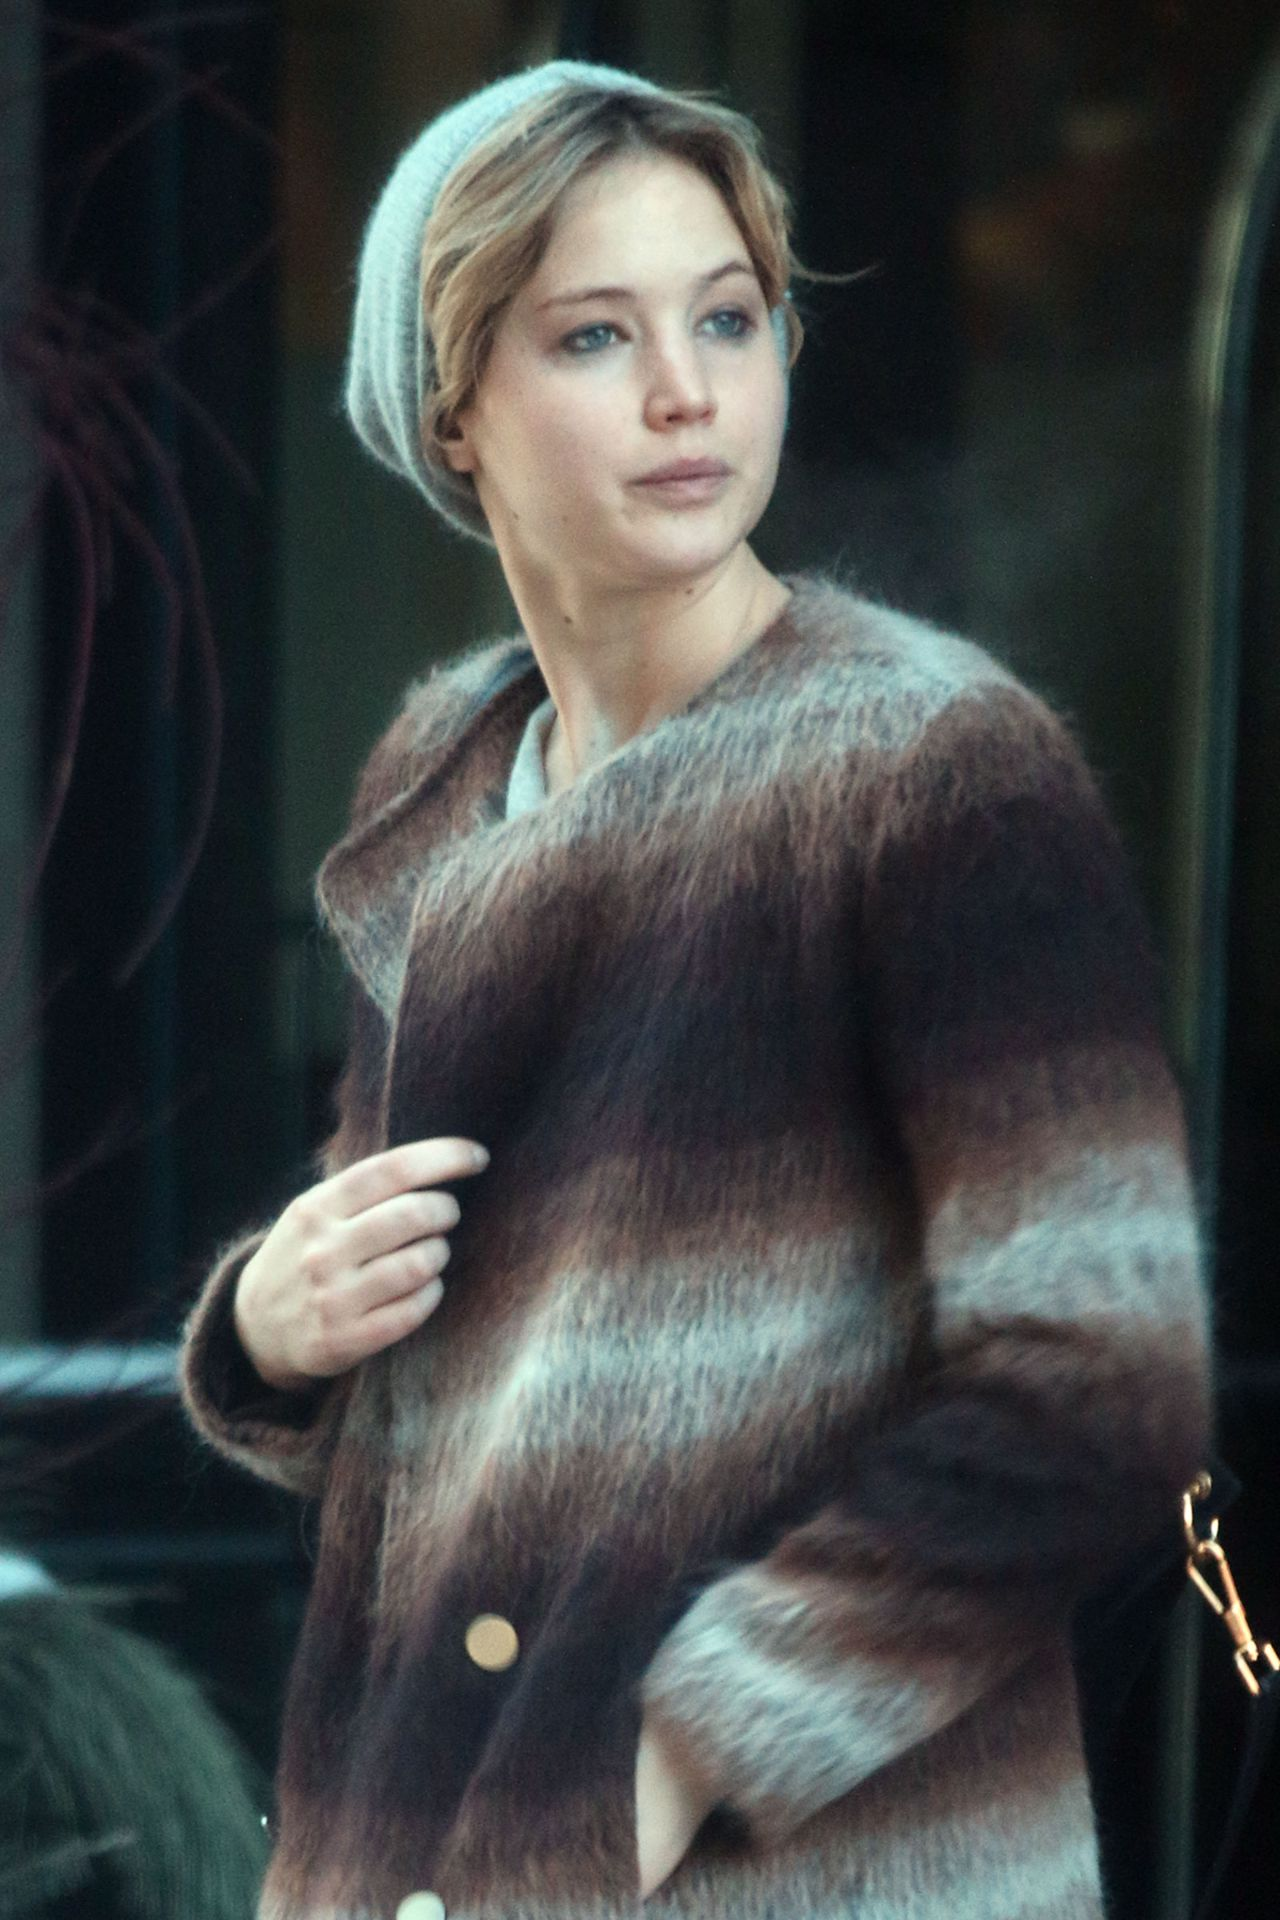 Jennifer Lawrence Street Style - Leaving Hotel in Montreal - February 2014